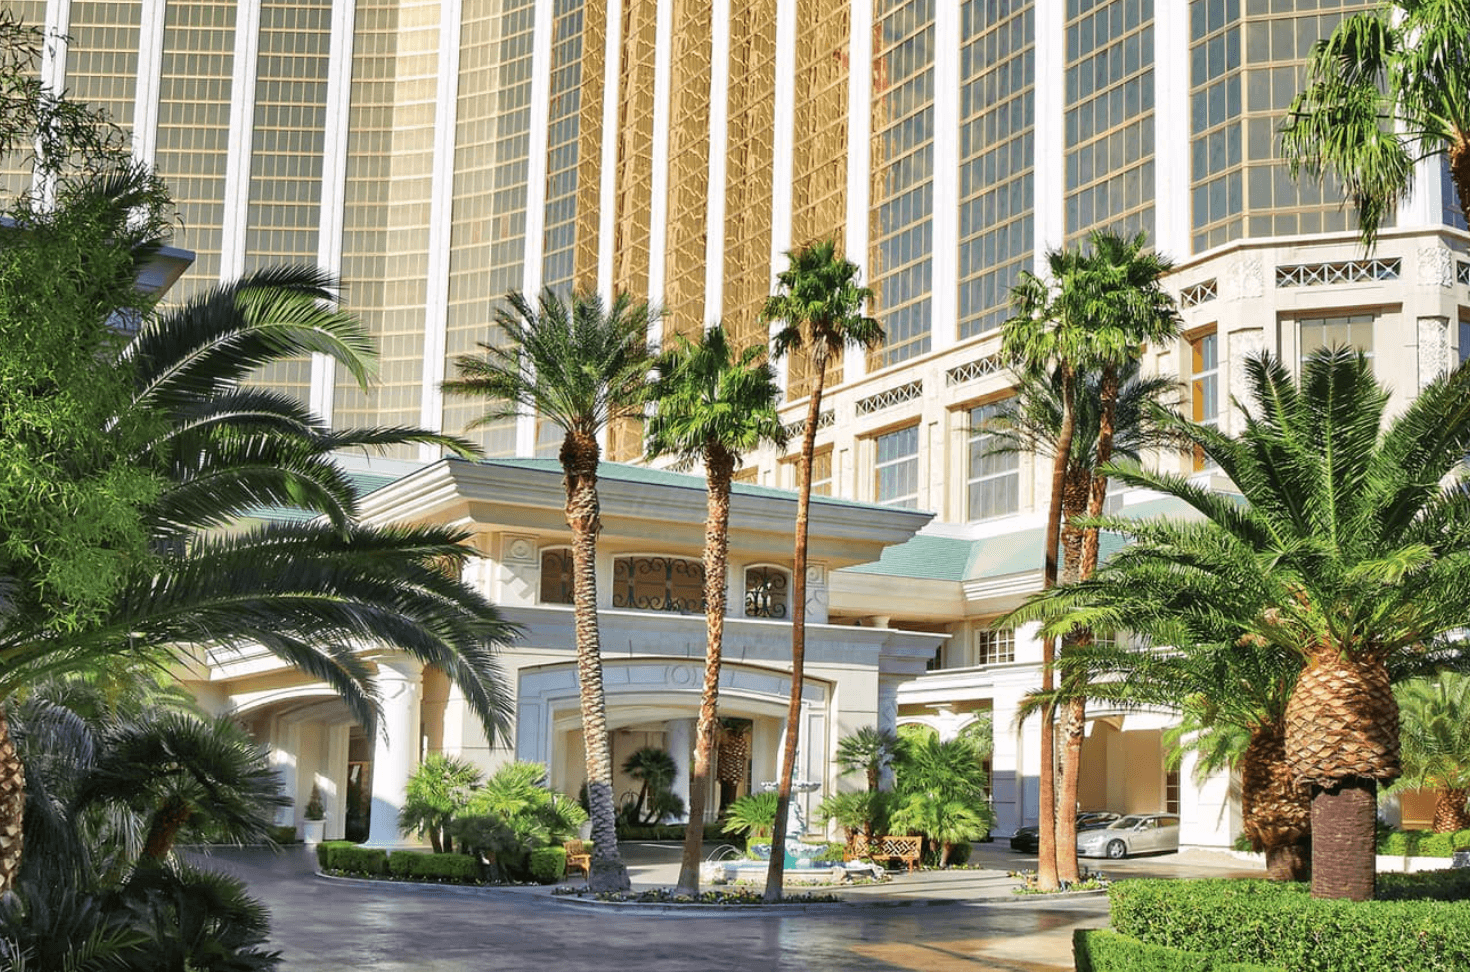 Las Vegas Four Seasons Hotel.png